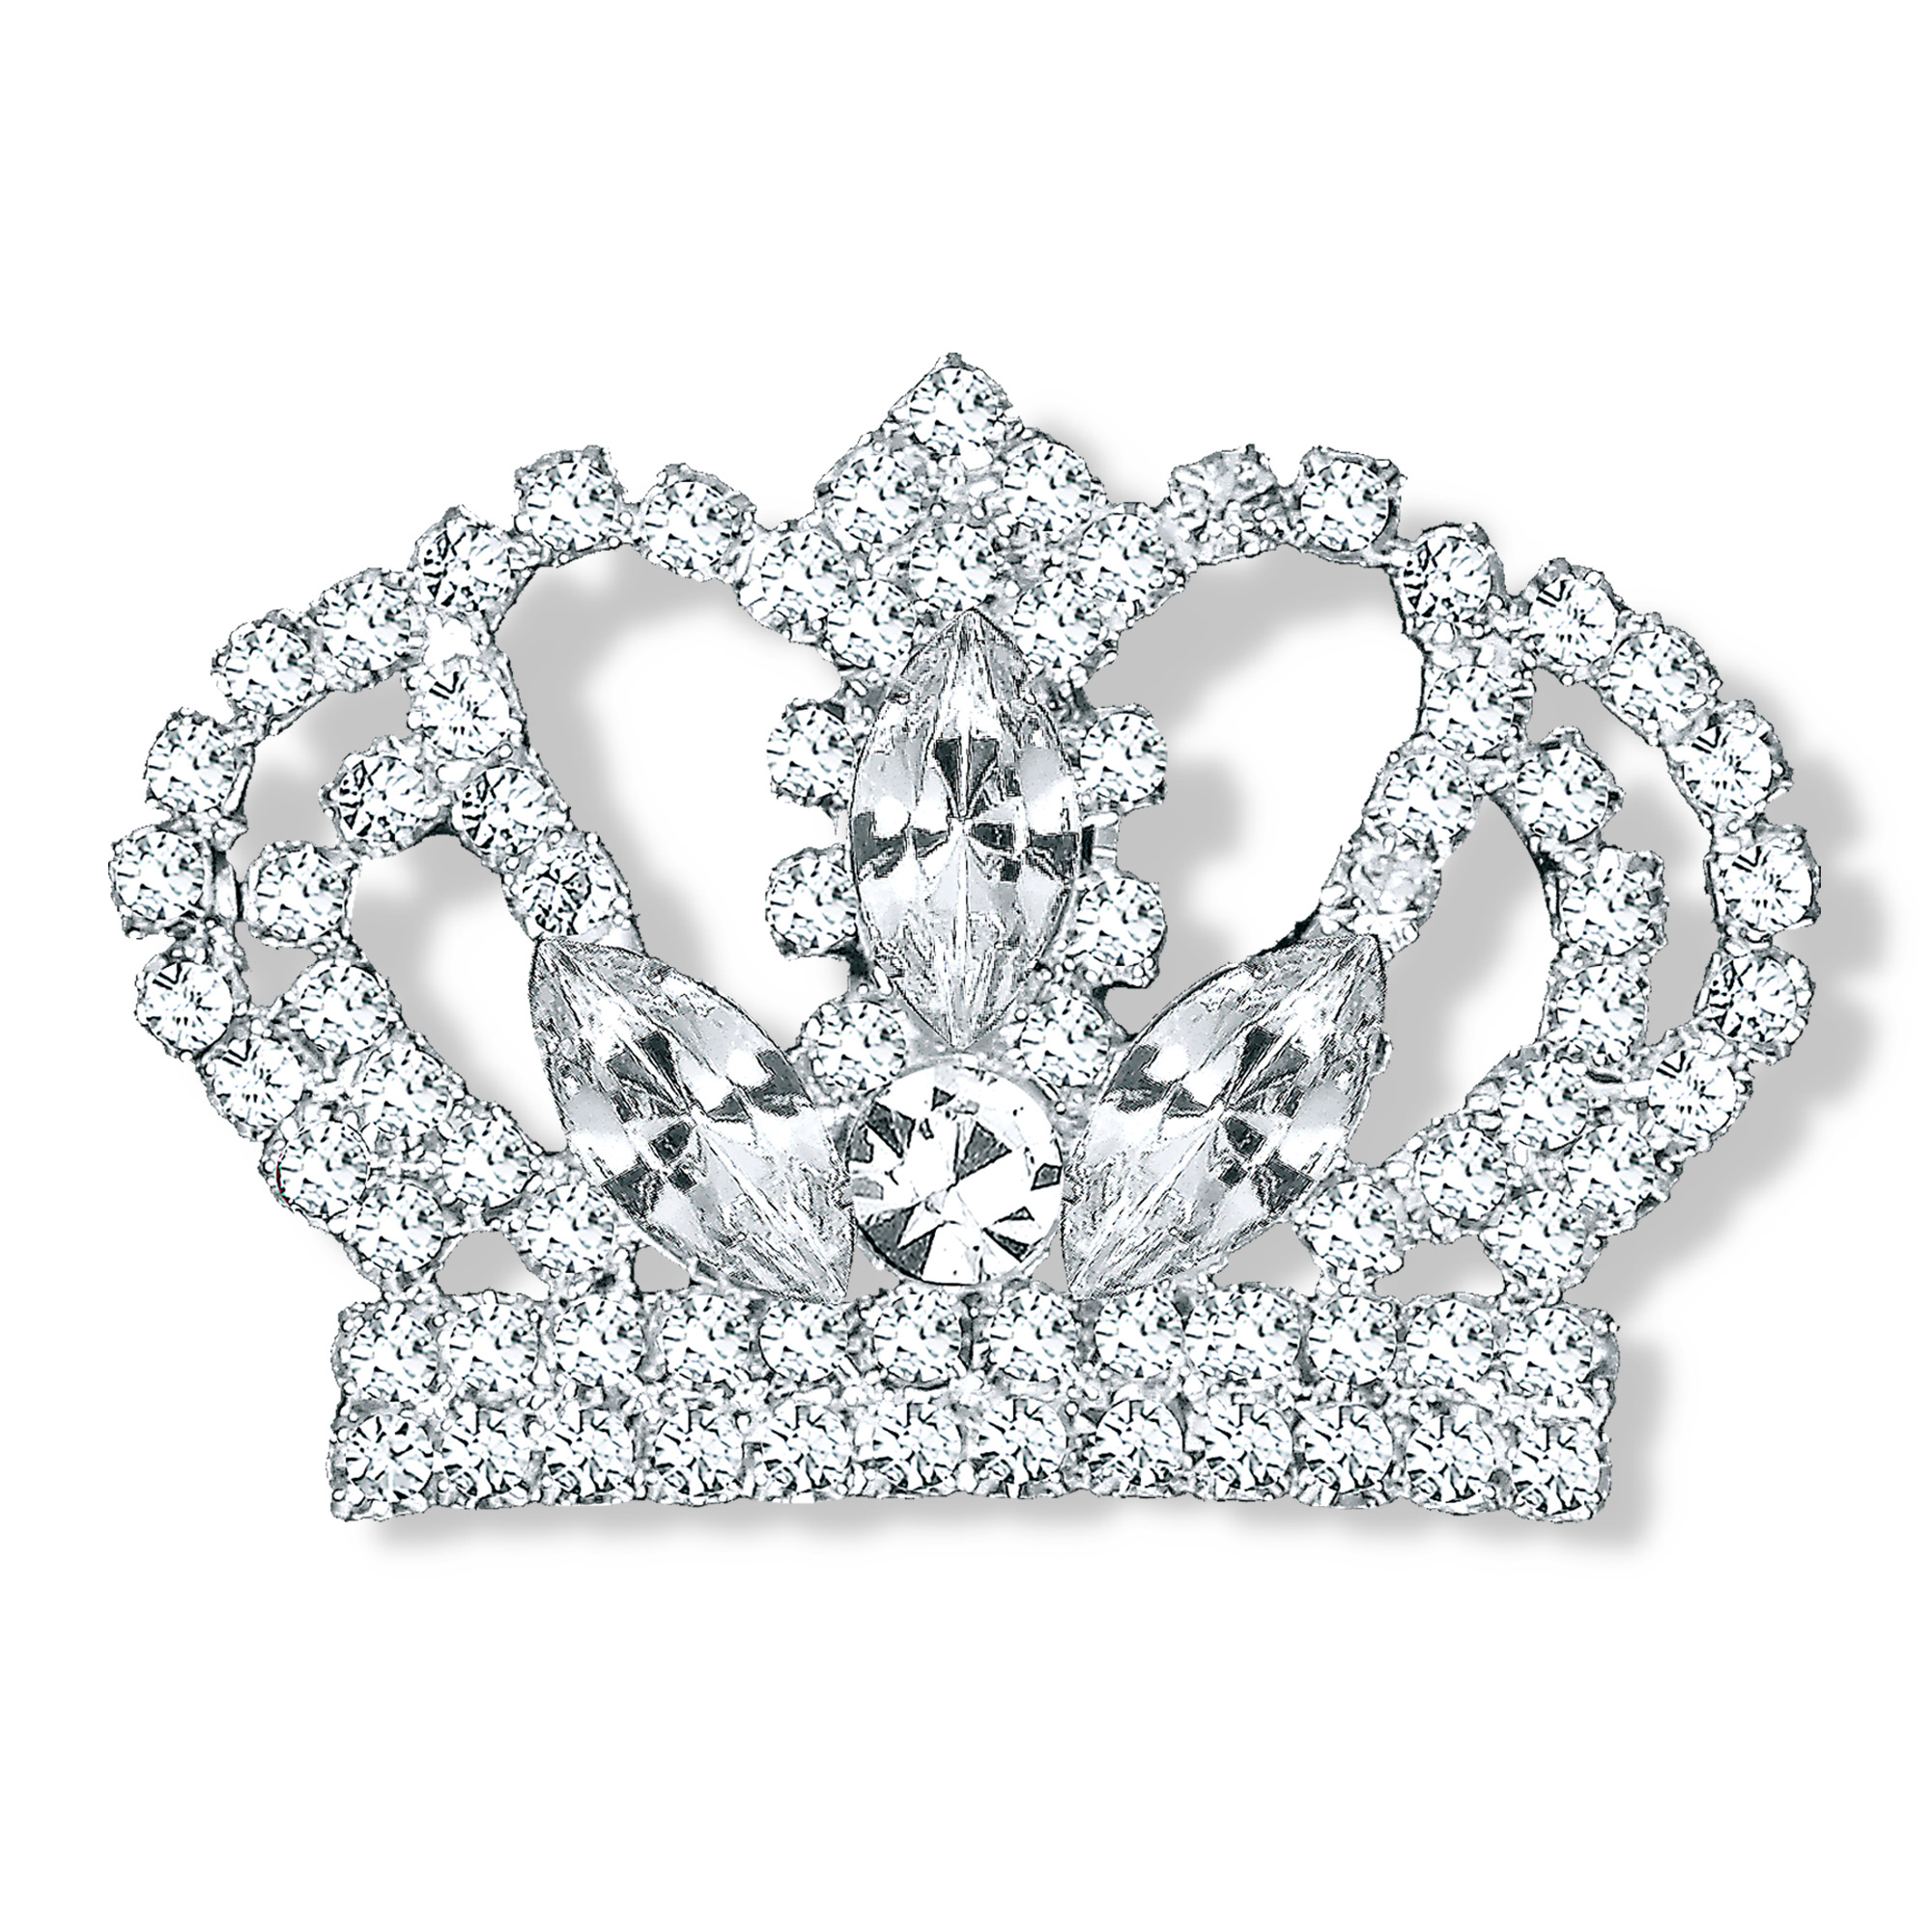 Glamour Goddess Jewelry WPGT200 Pageant Pin Rhinestone Royal Crown Pin Brooch Crystal Silver Plated by